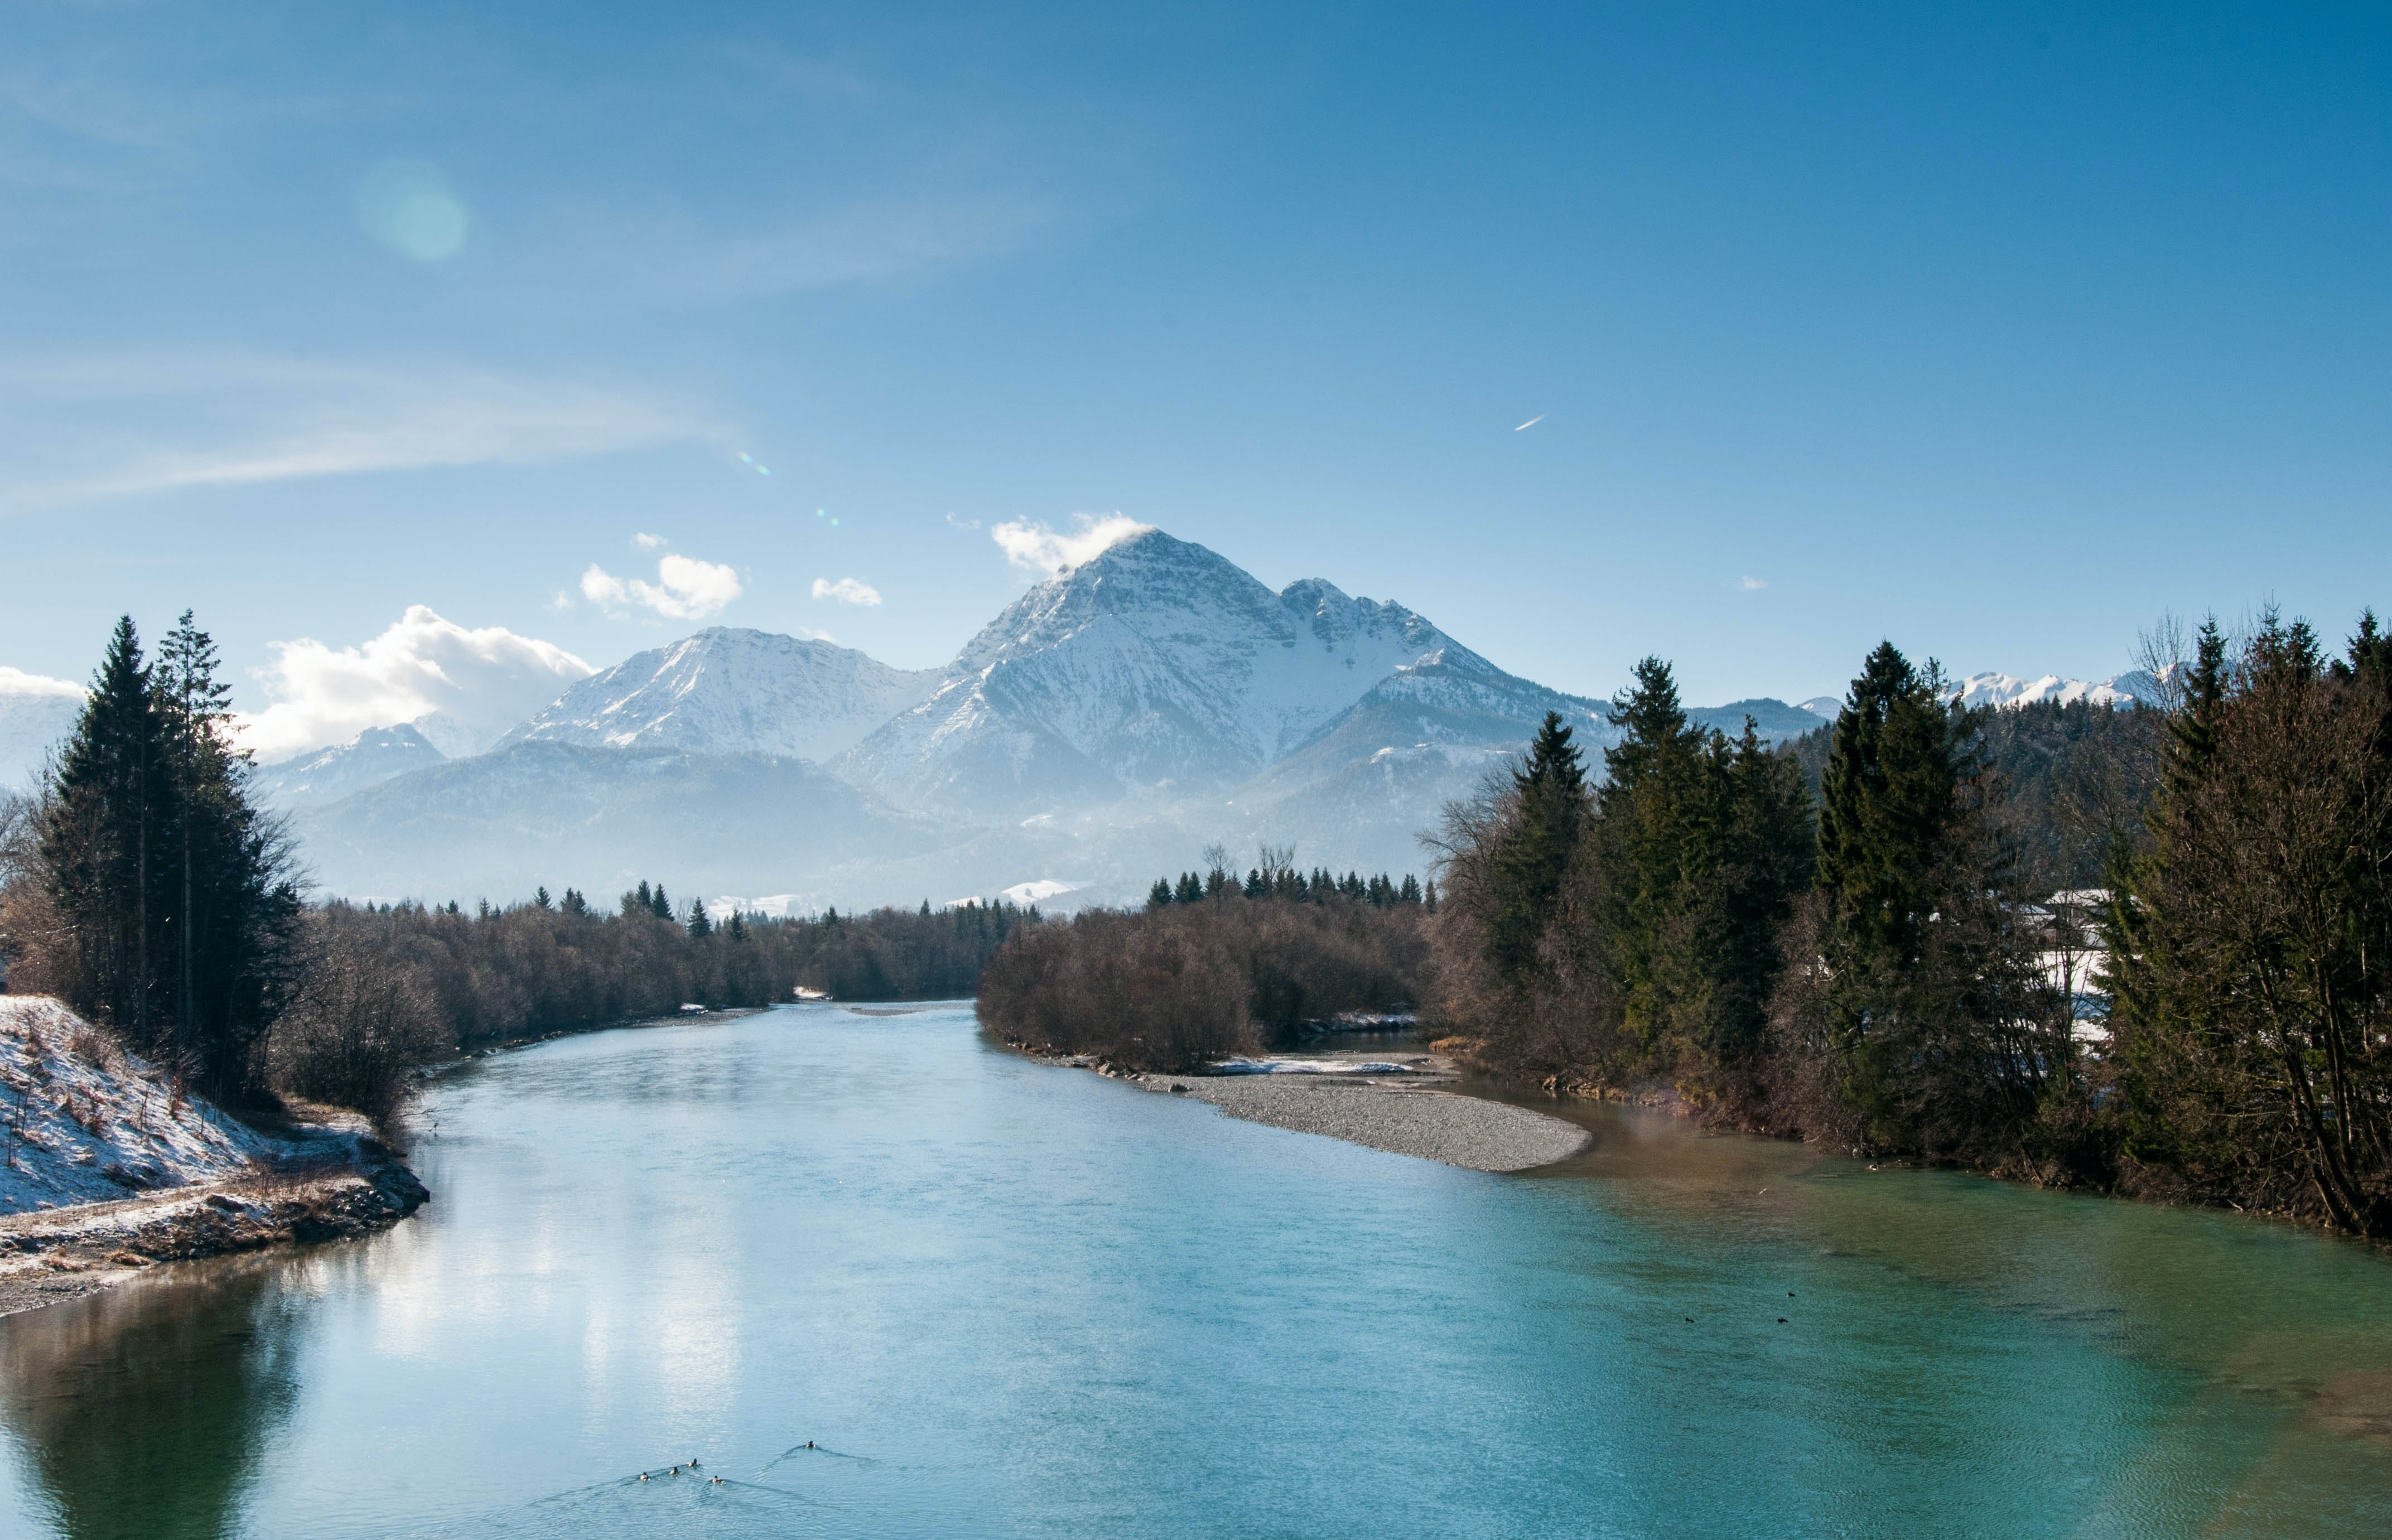 A scenic landscape with a bending river and snow-capped mountains in the distance